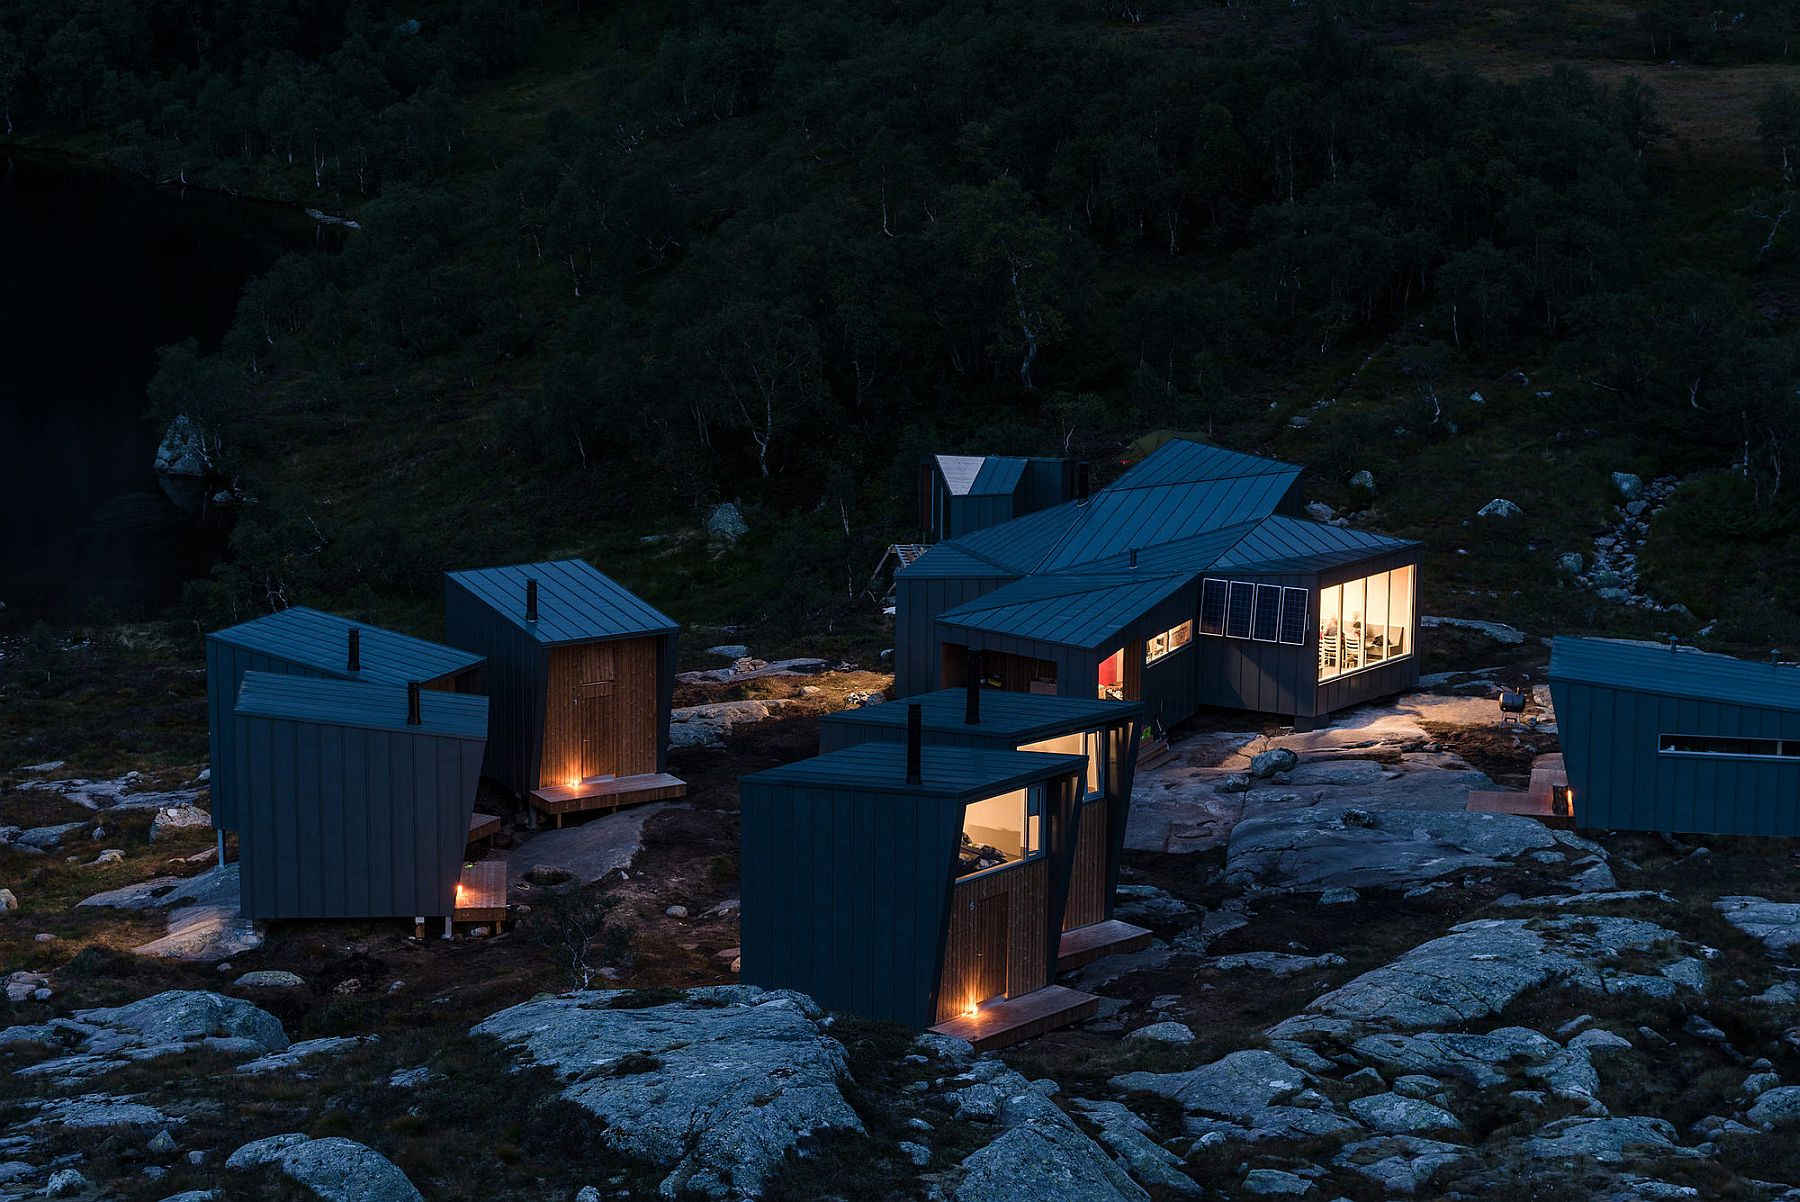 Awesome self-catering mountain lodges in Norway are nature lovers' dream!